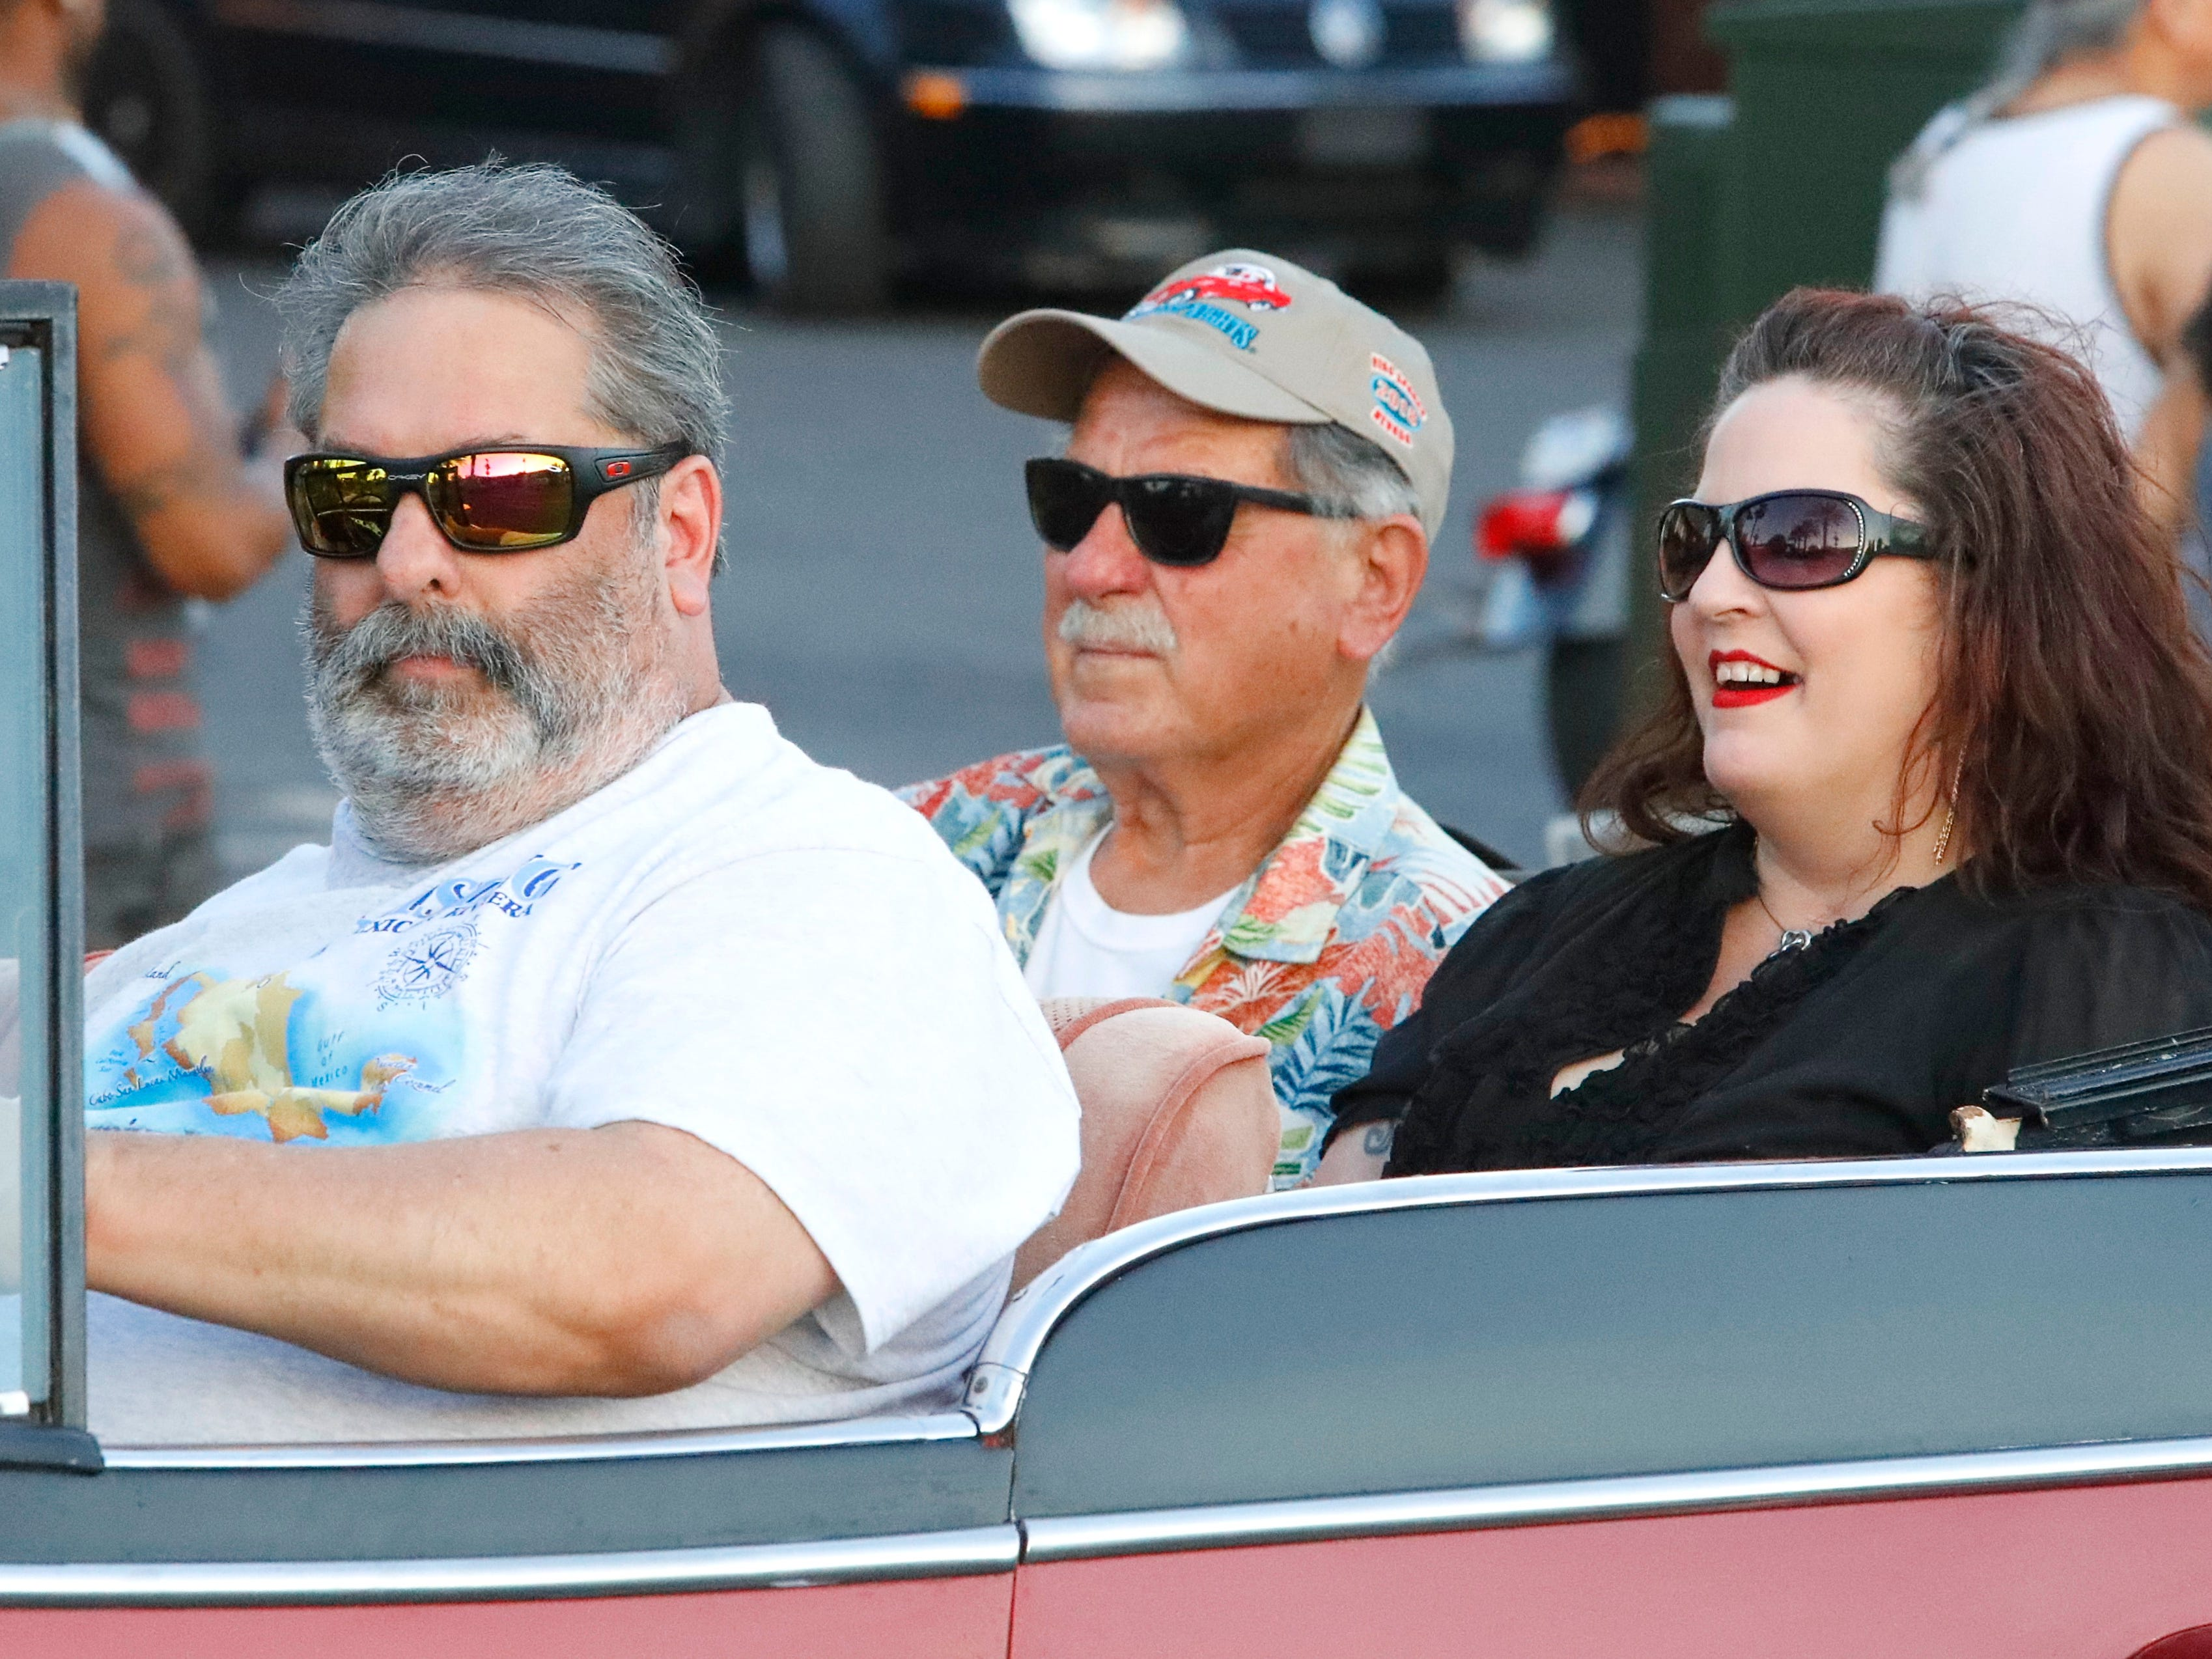 Drivers took their Kool rides on the Friday Nite Cruise route so spectators could admire their cars and other classic vehicles as part of Kool April Nites.